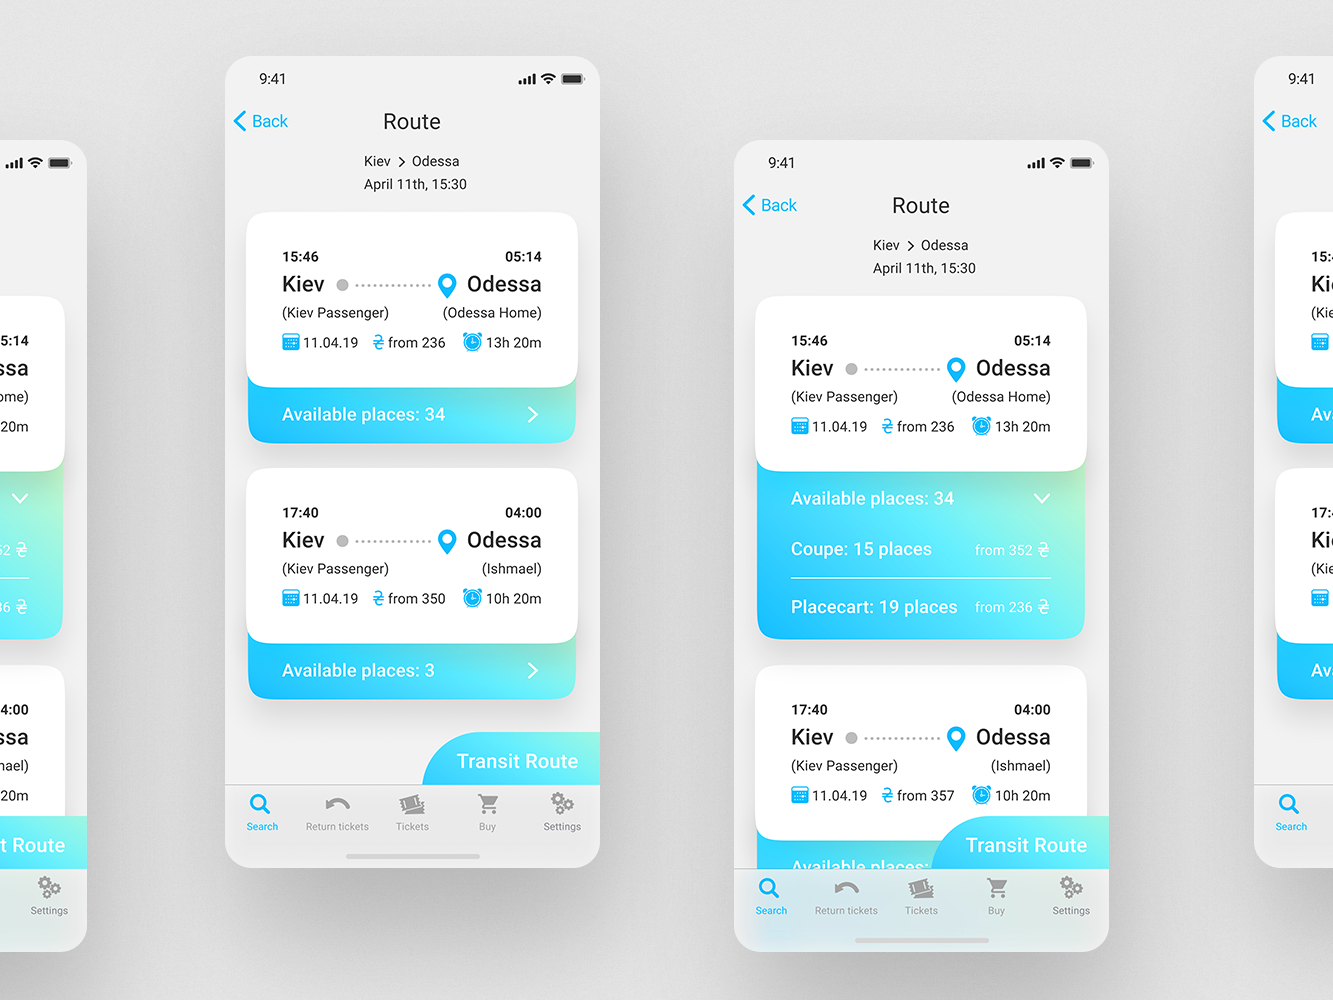 Ticket Purchase App ticket design ticket app ticket mobile design mobile ui mobile app mobile iphone x iphone app design iphone app iphone app design app minimal graphic ux ui  ux design ui  ux ui design